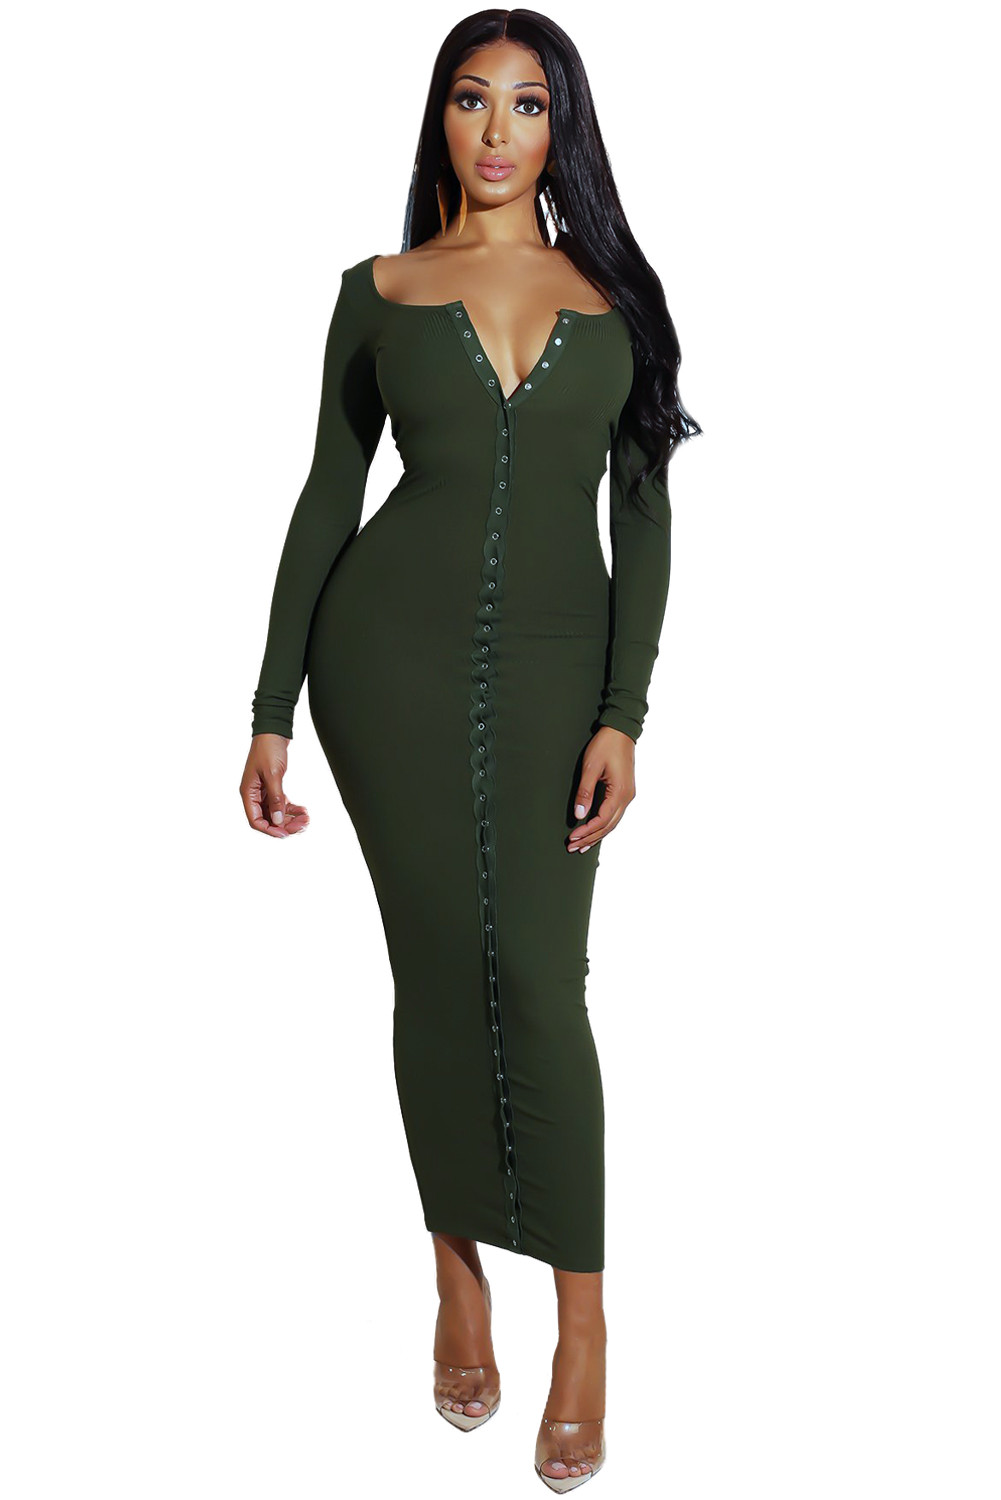 6a466ac164 Green Long Sleeve Snap Button Ribbed Dress - SELECTAFASHION ...